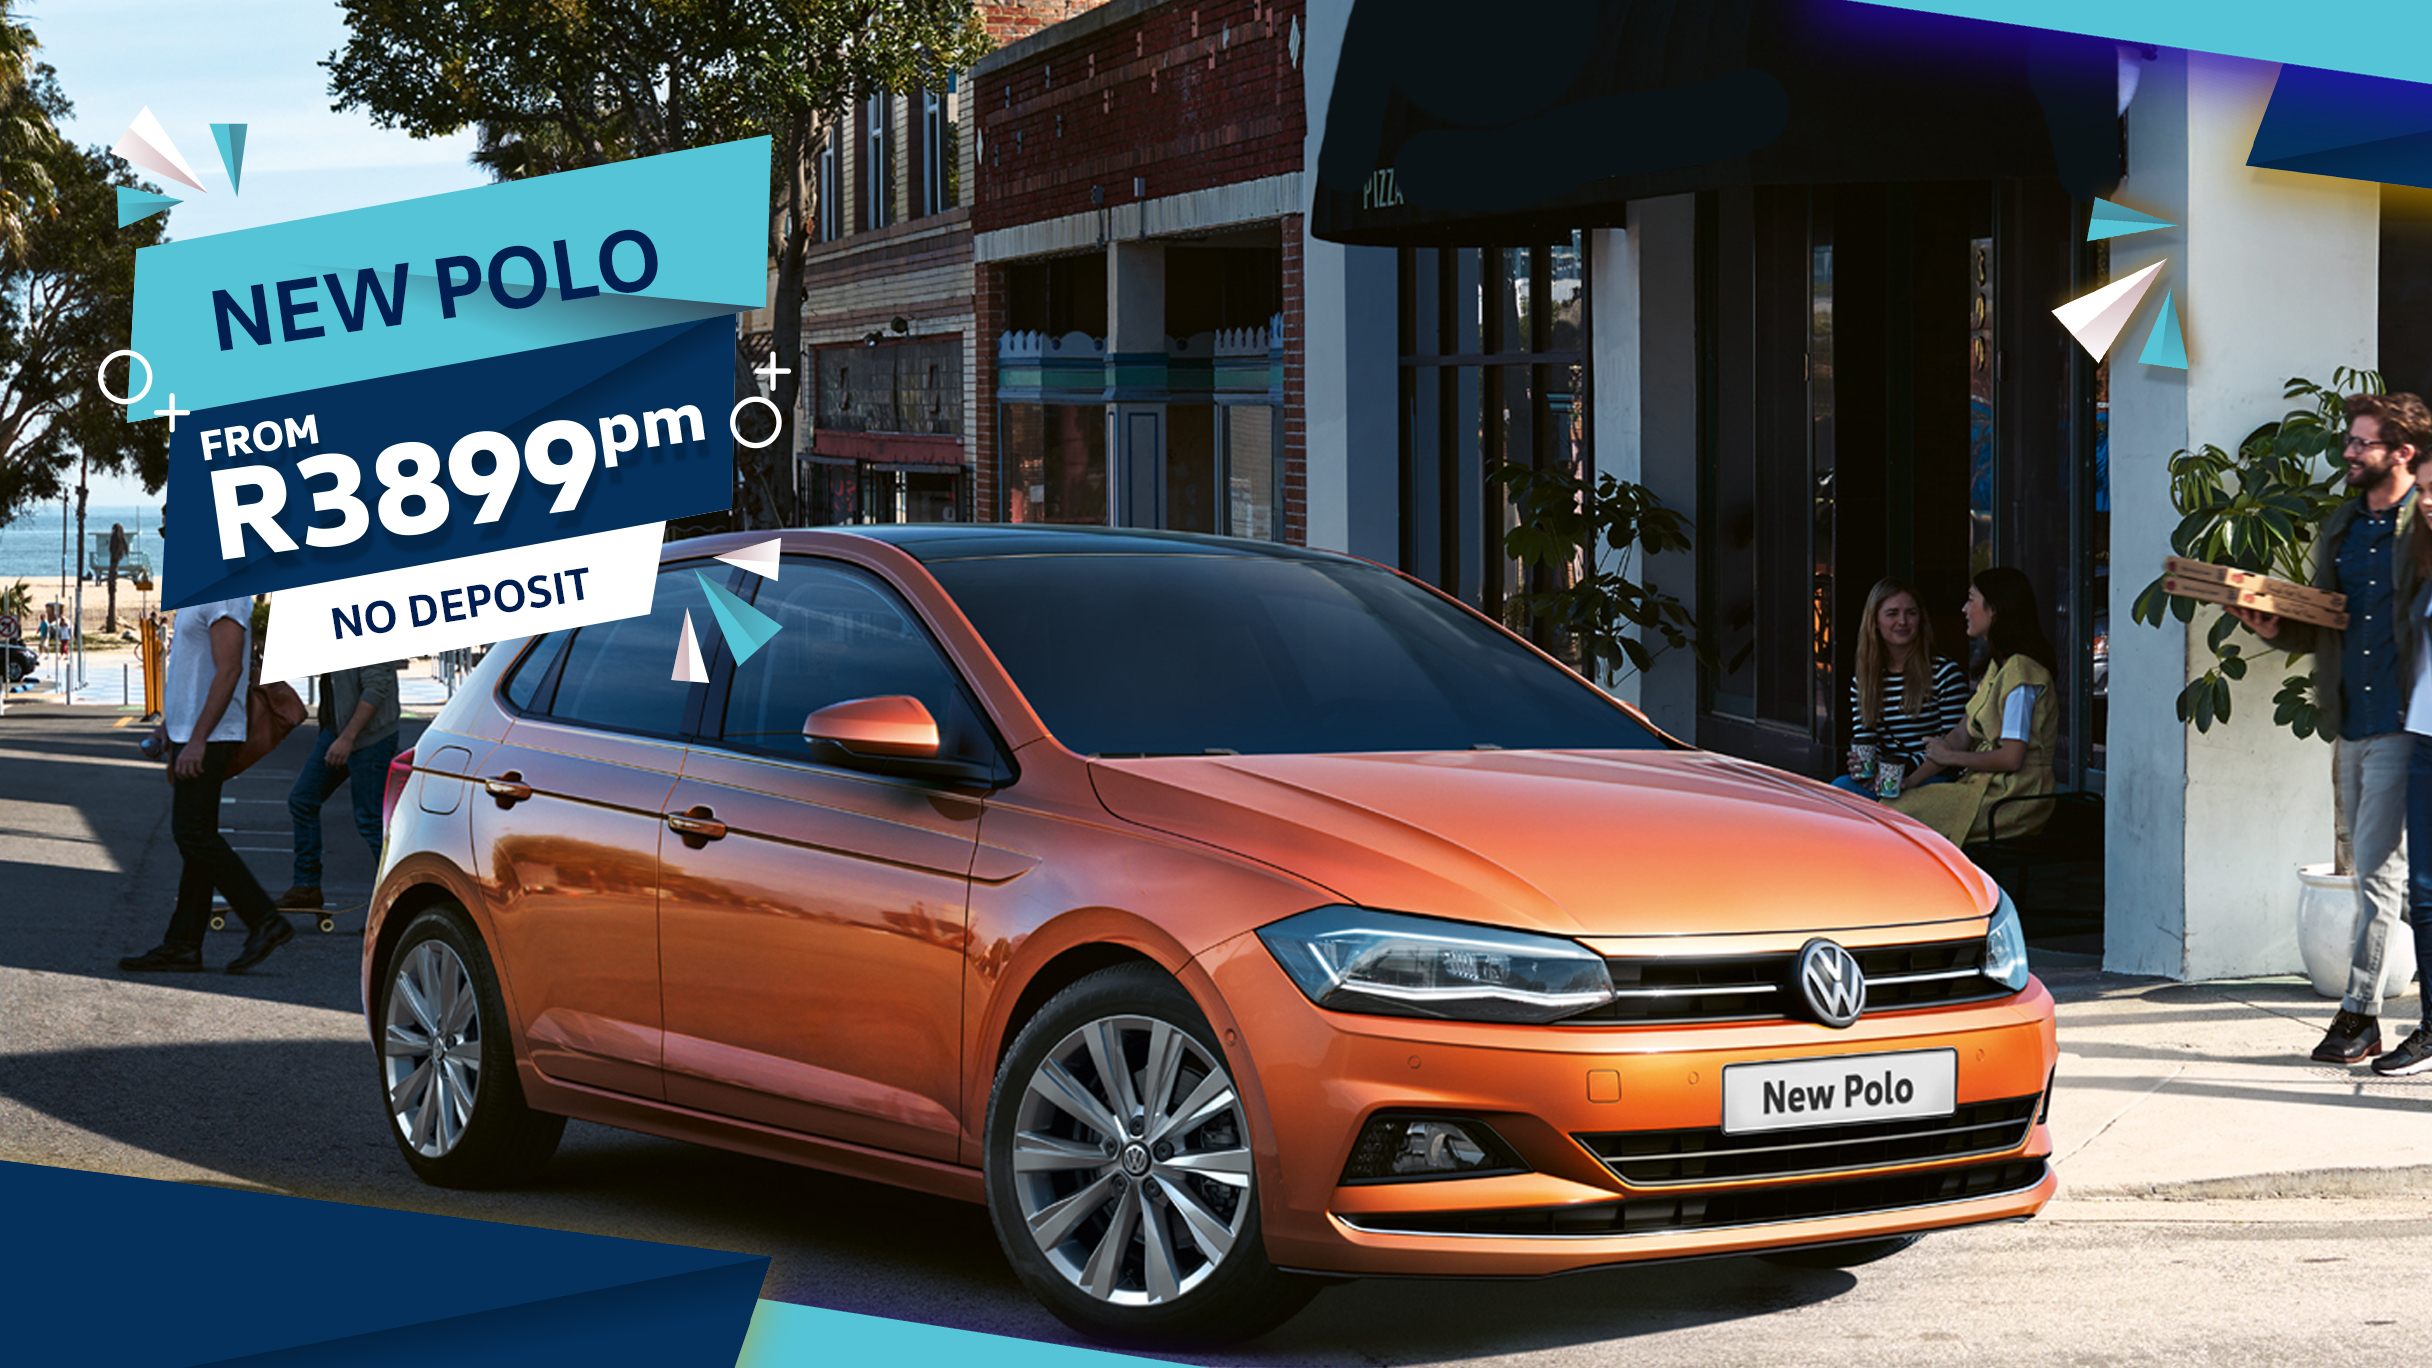 VW Polo offer at Barons Woodmead